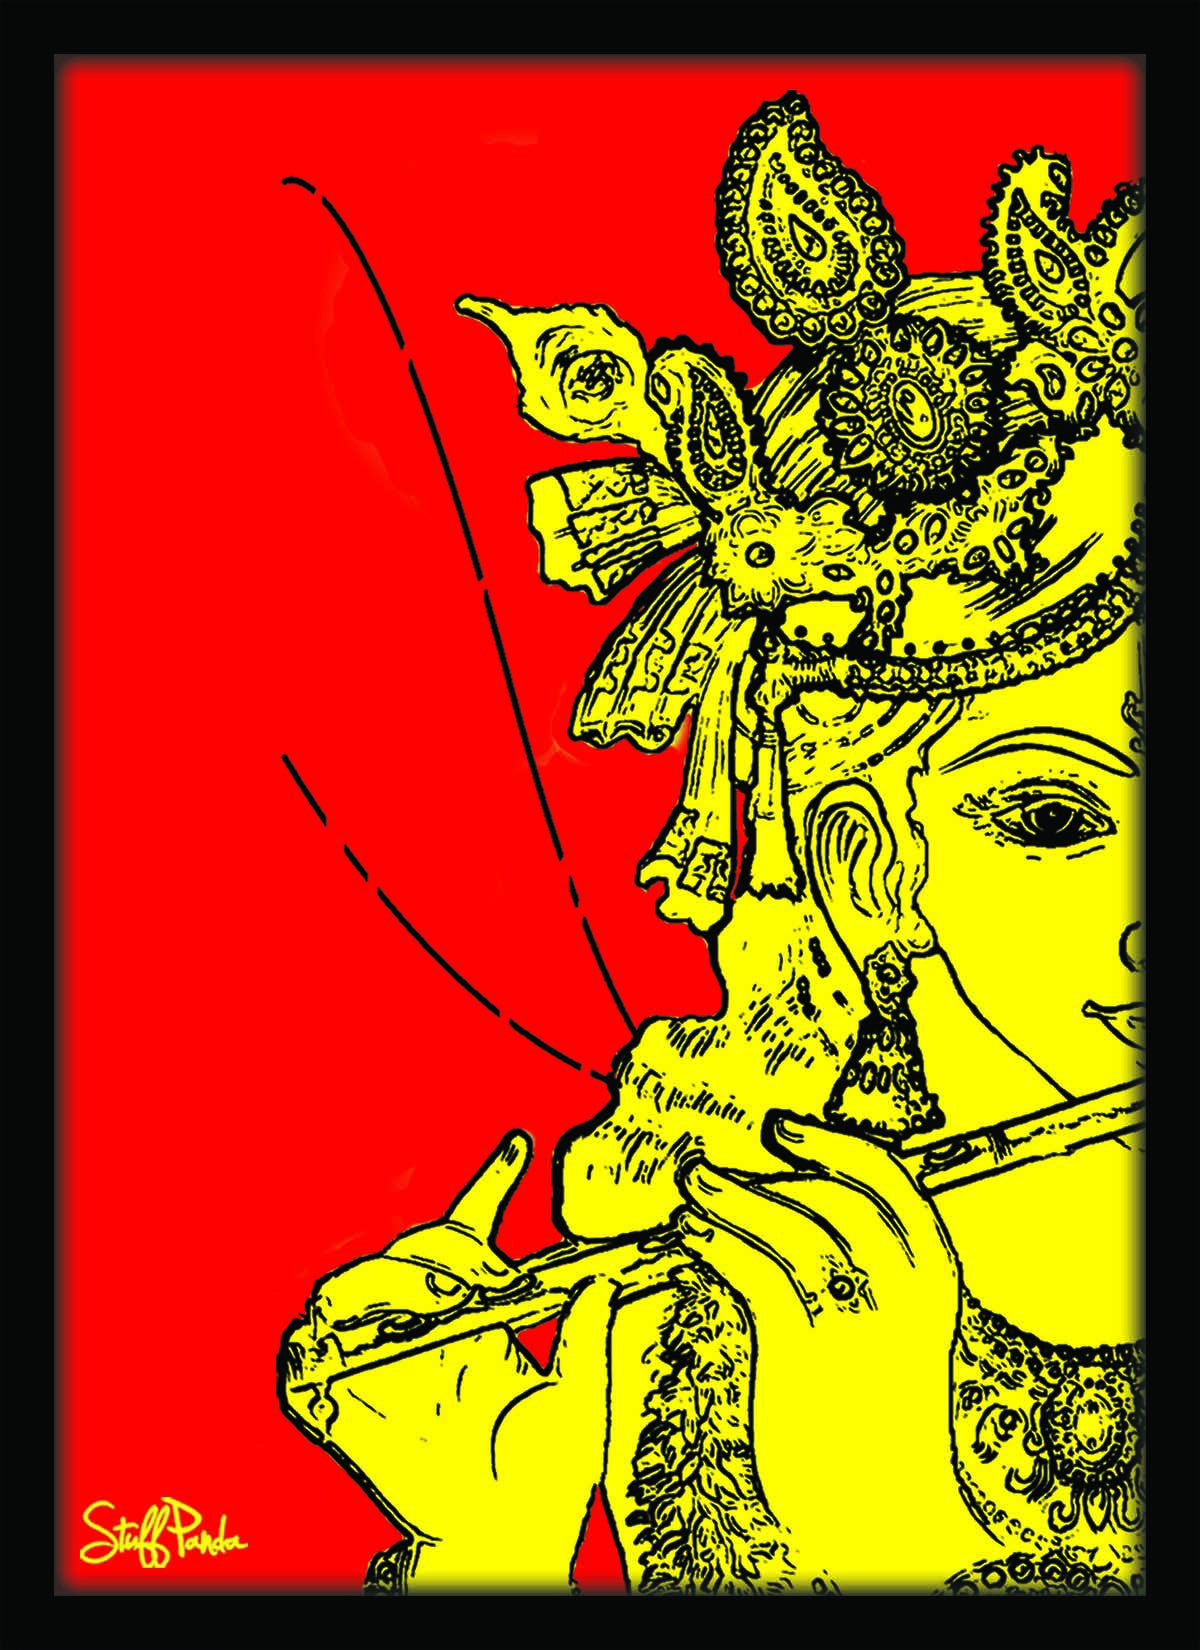 Cool Funky Abstract Krishna Red Glass frame posters Wall art - stuffpanda - 1